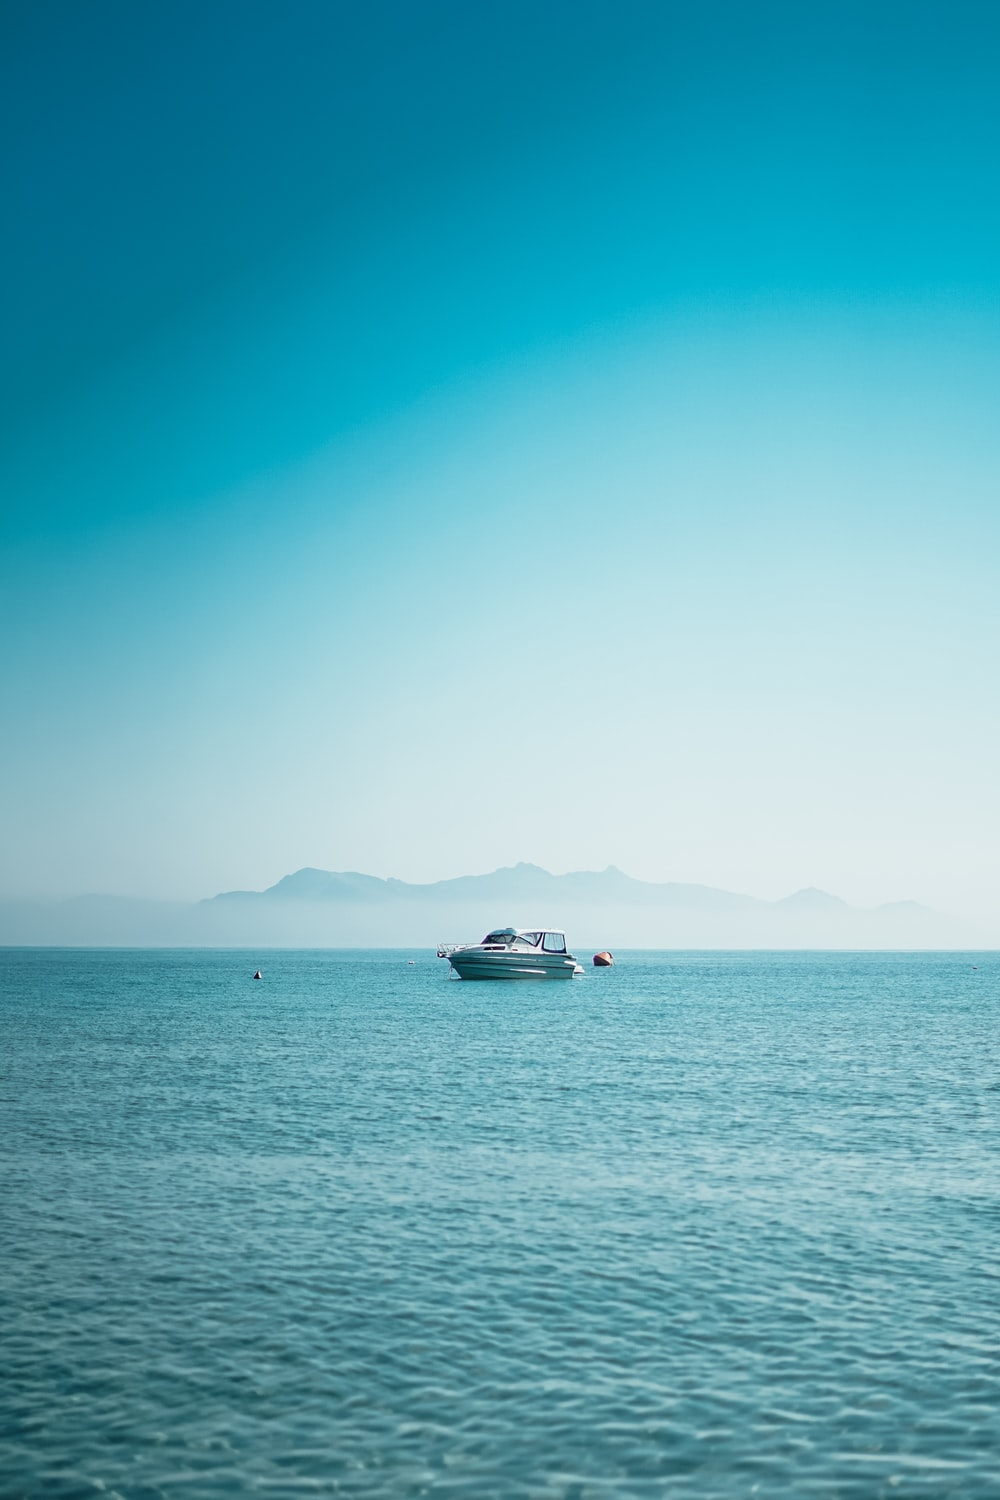 boat at the sea during daytime